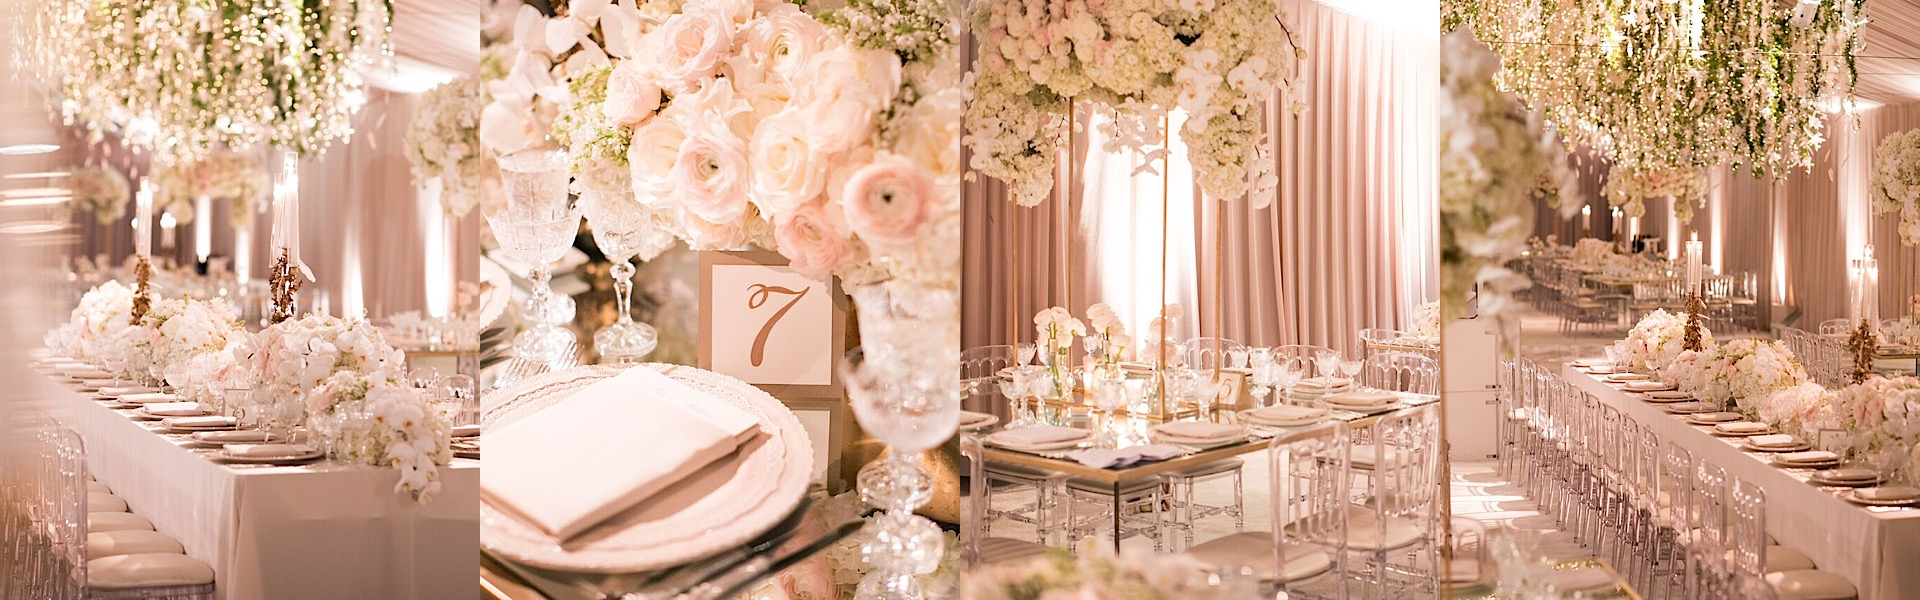 Glamorous White And Gold Beverly Hills Wedding At The Bel Air Hotel